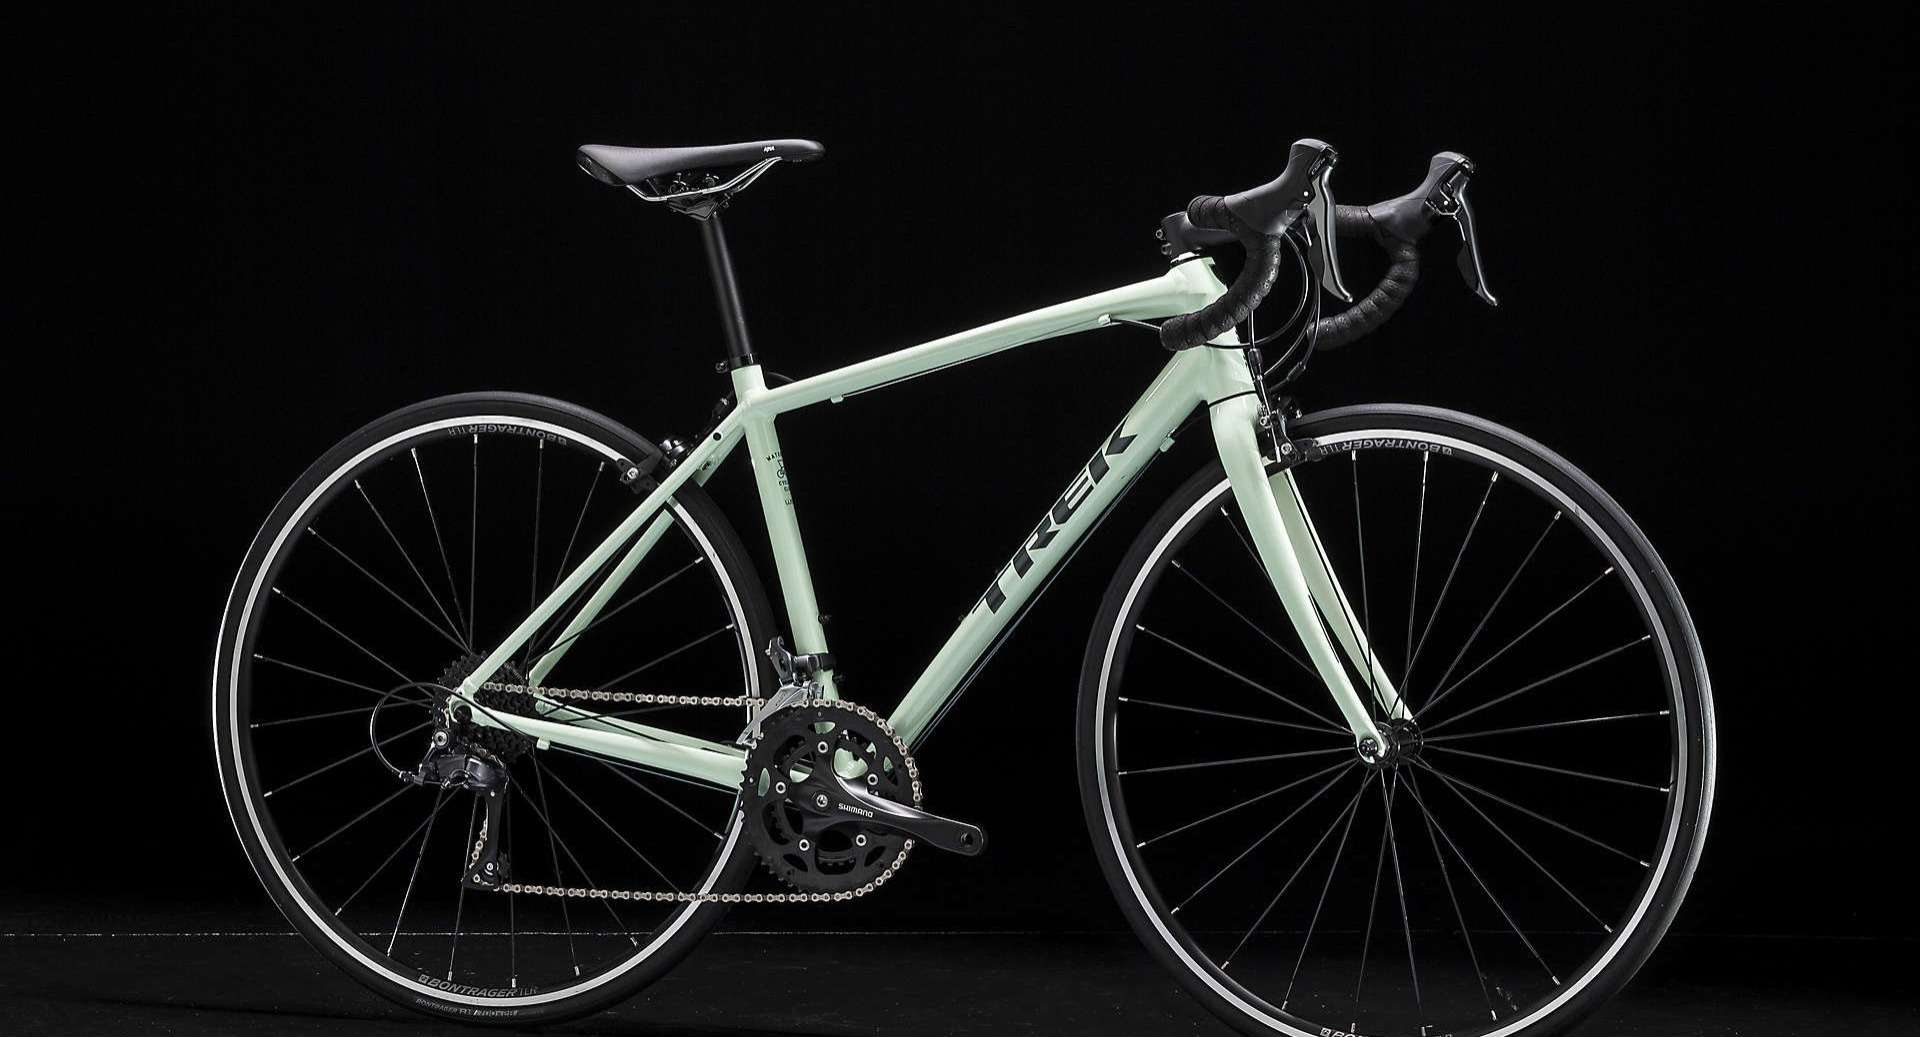 The Best Road Bikes Under $1000 - Our Picks - www dedhambike com